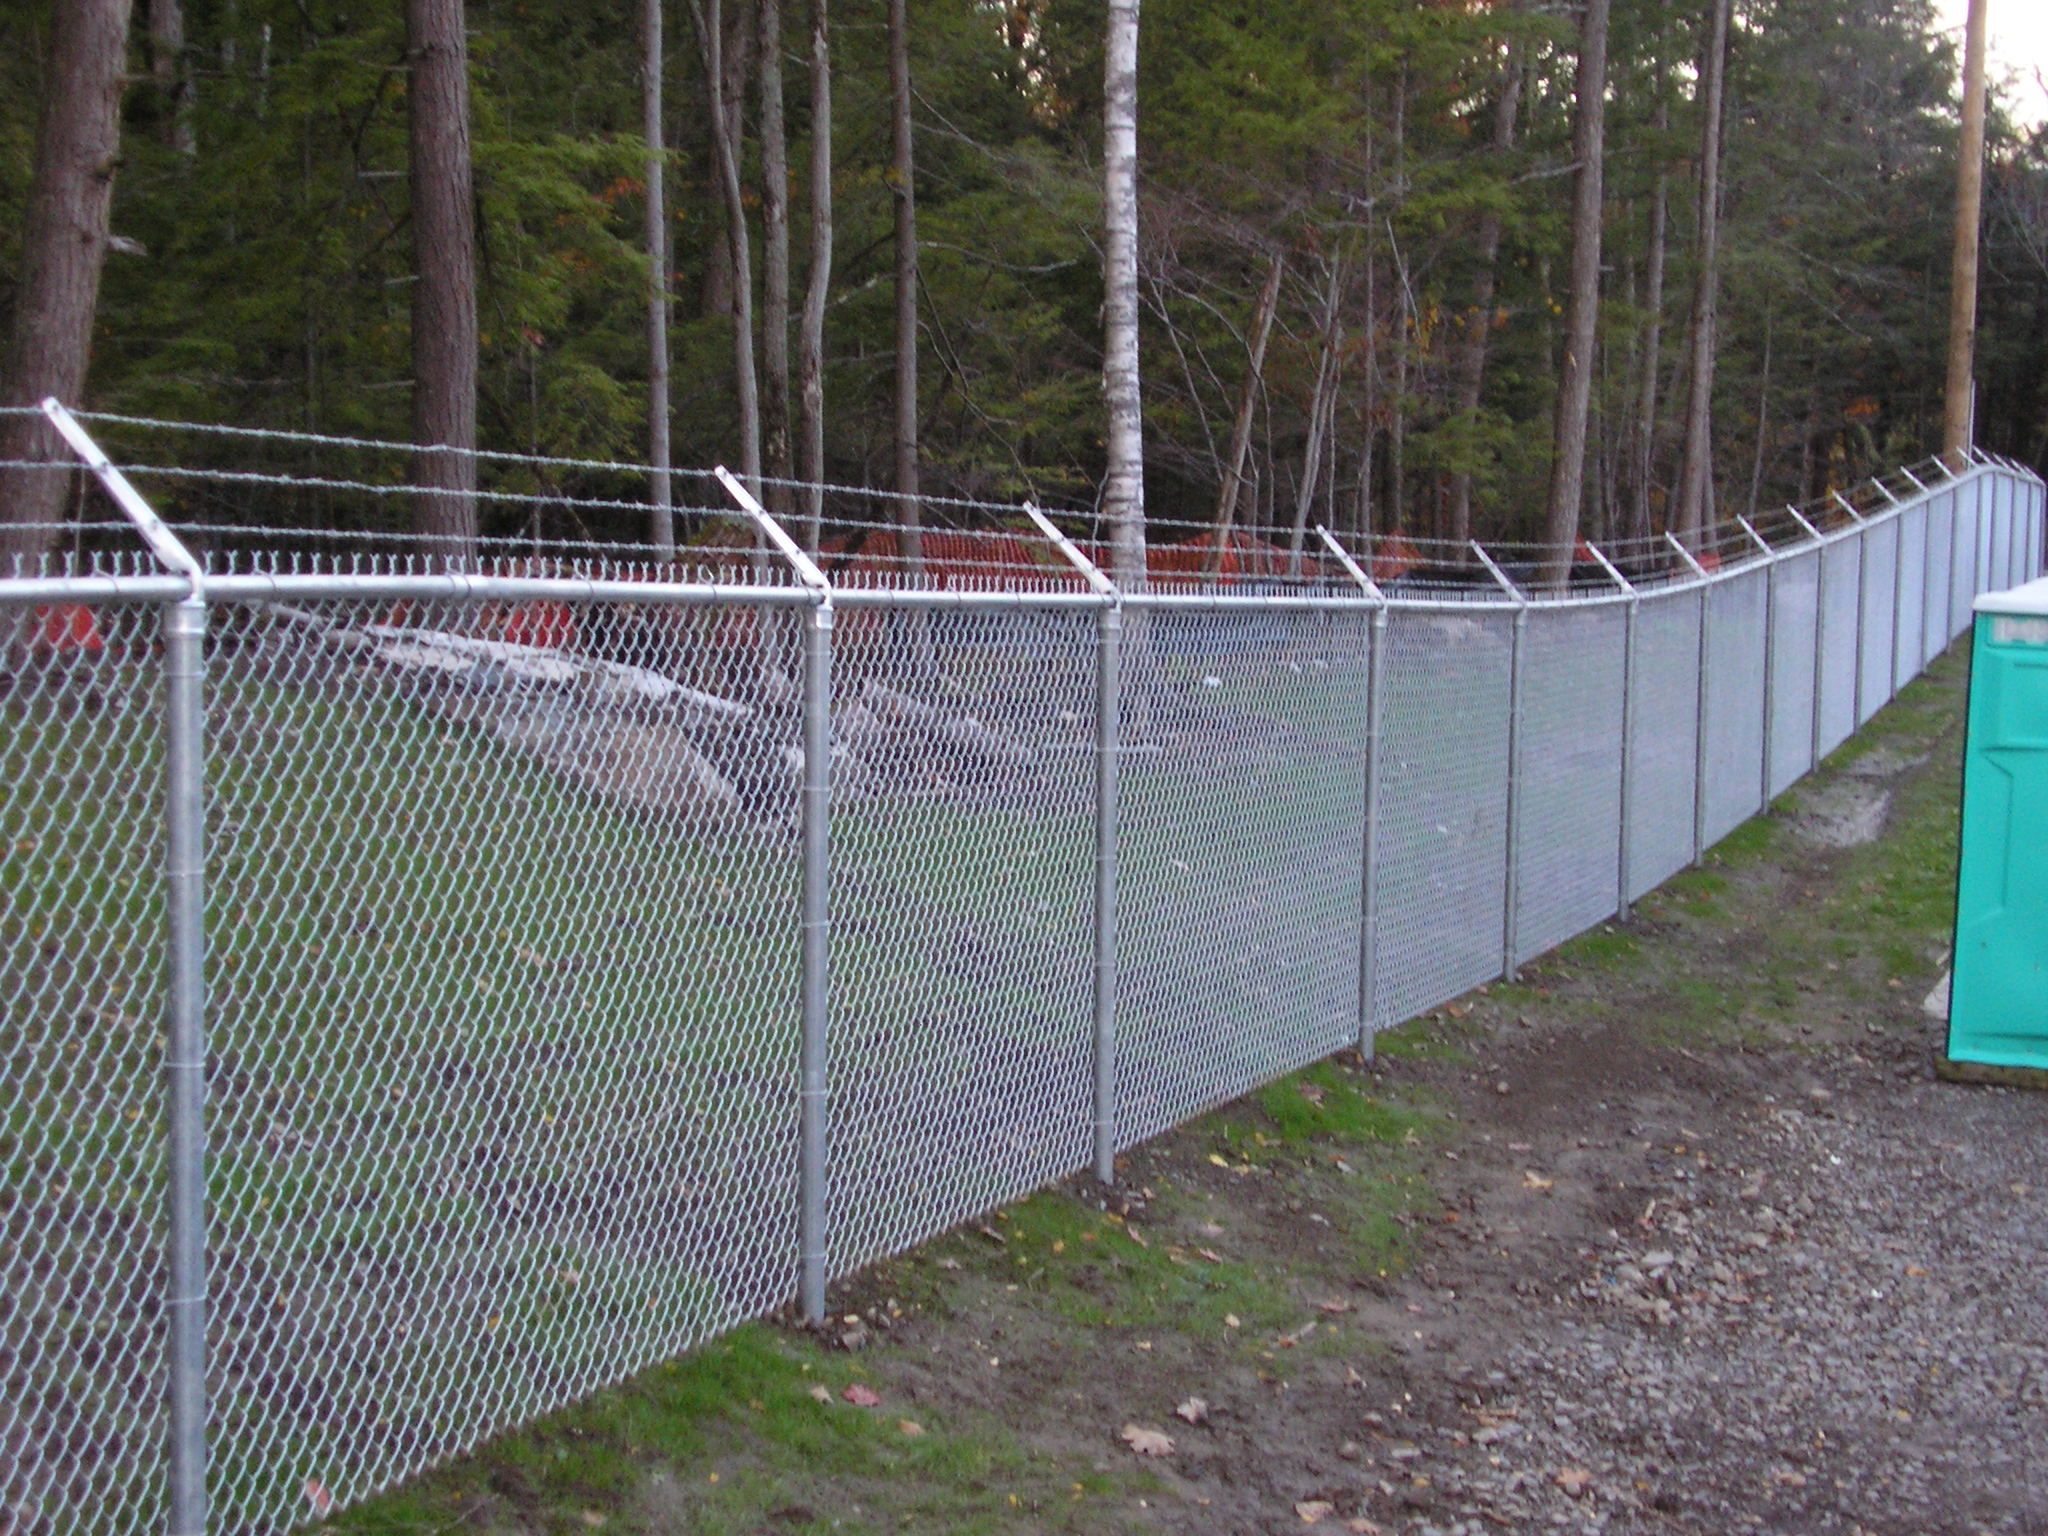 Security Chain Link Fence Installations near Burlington, VT